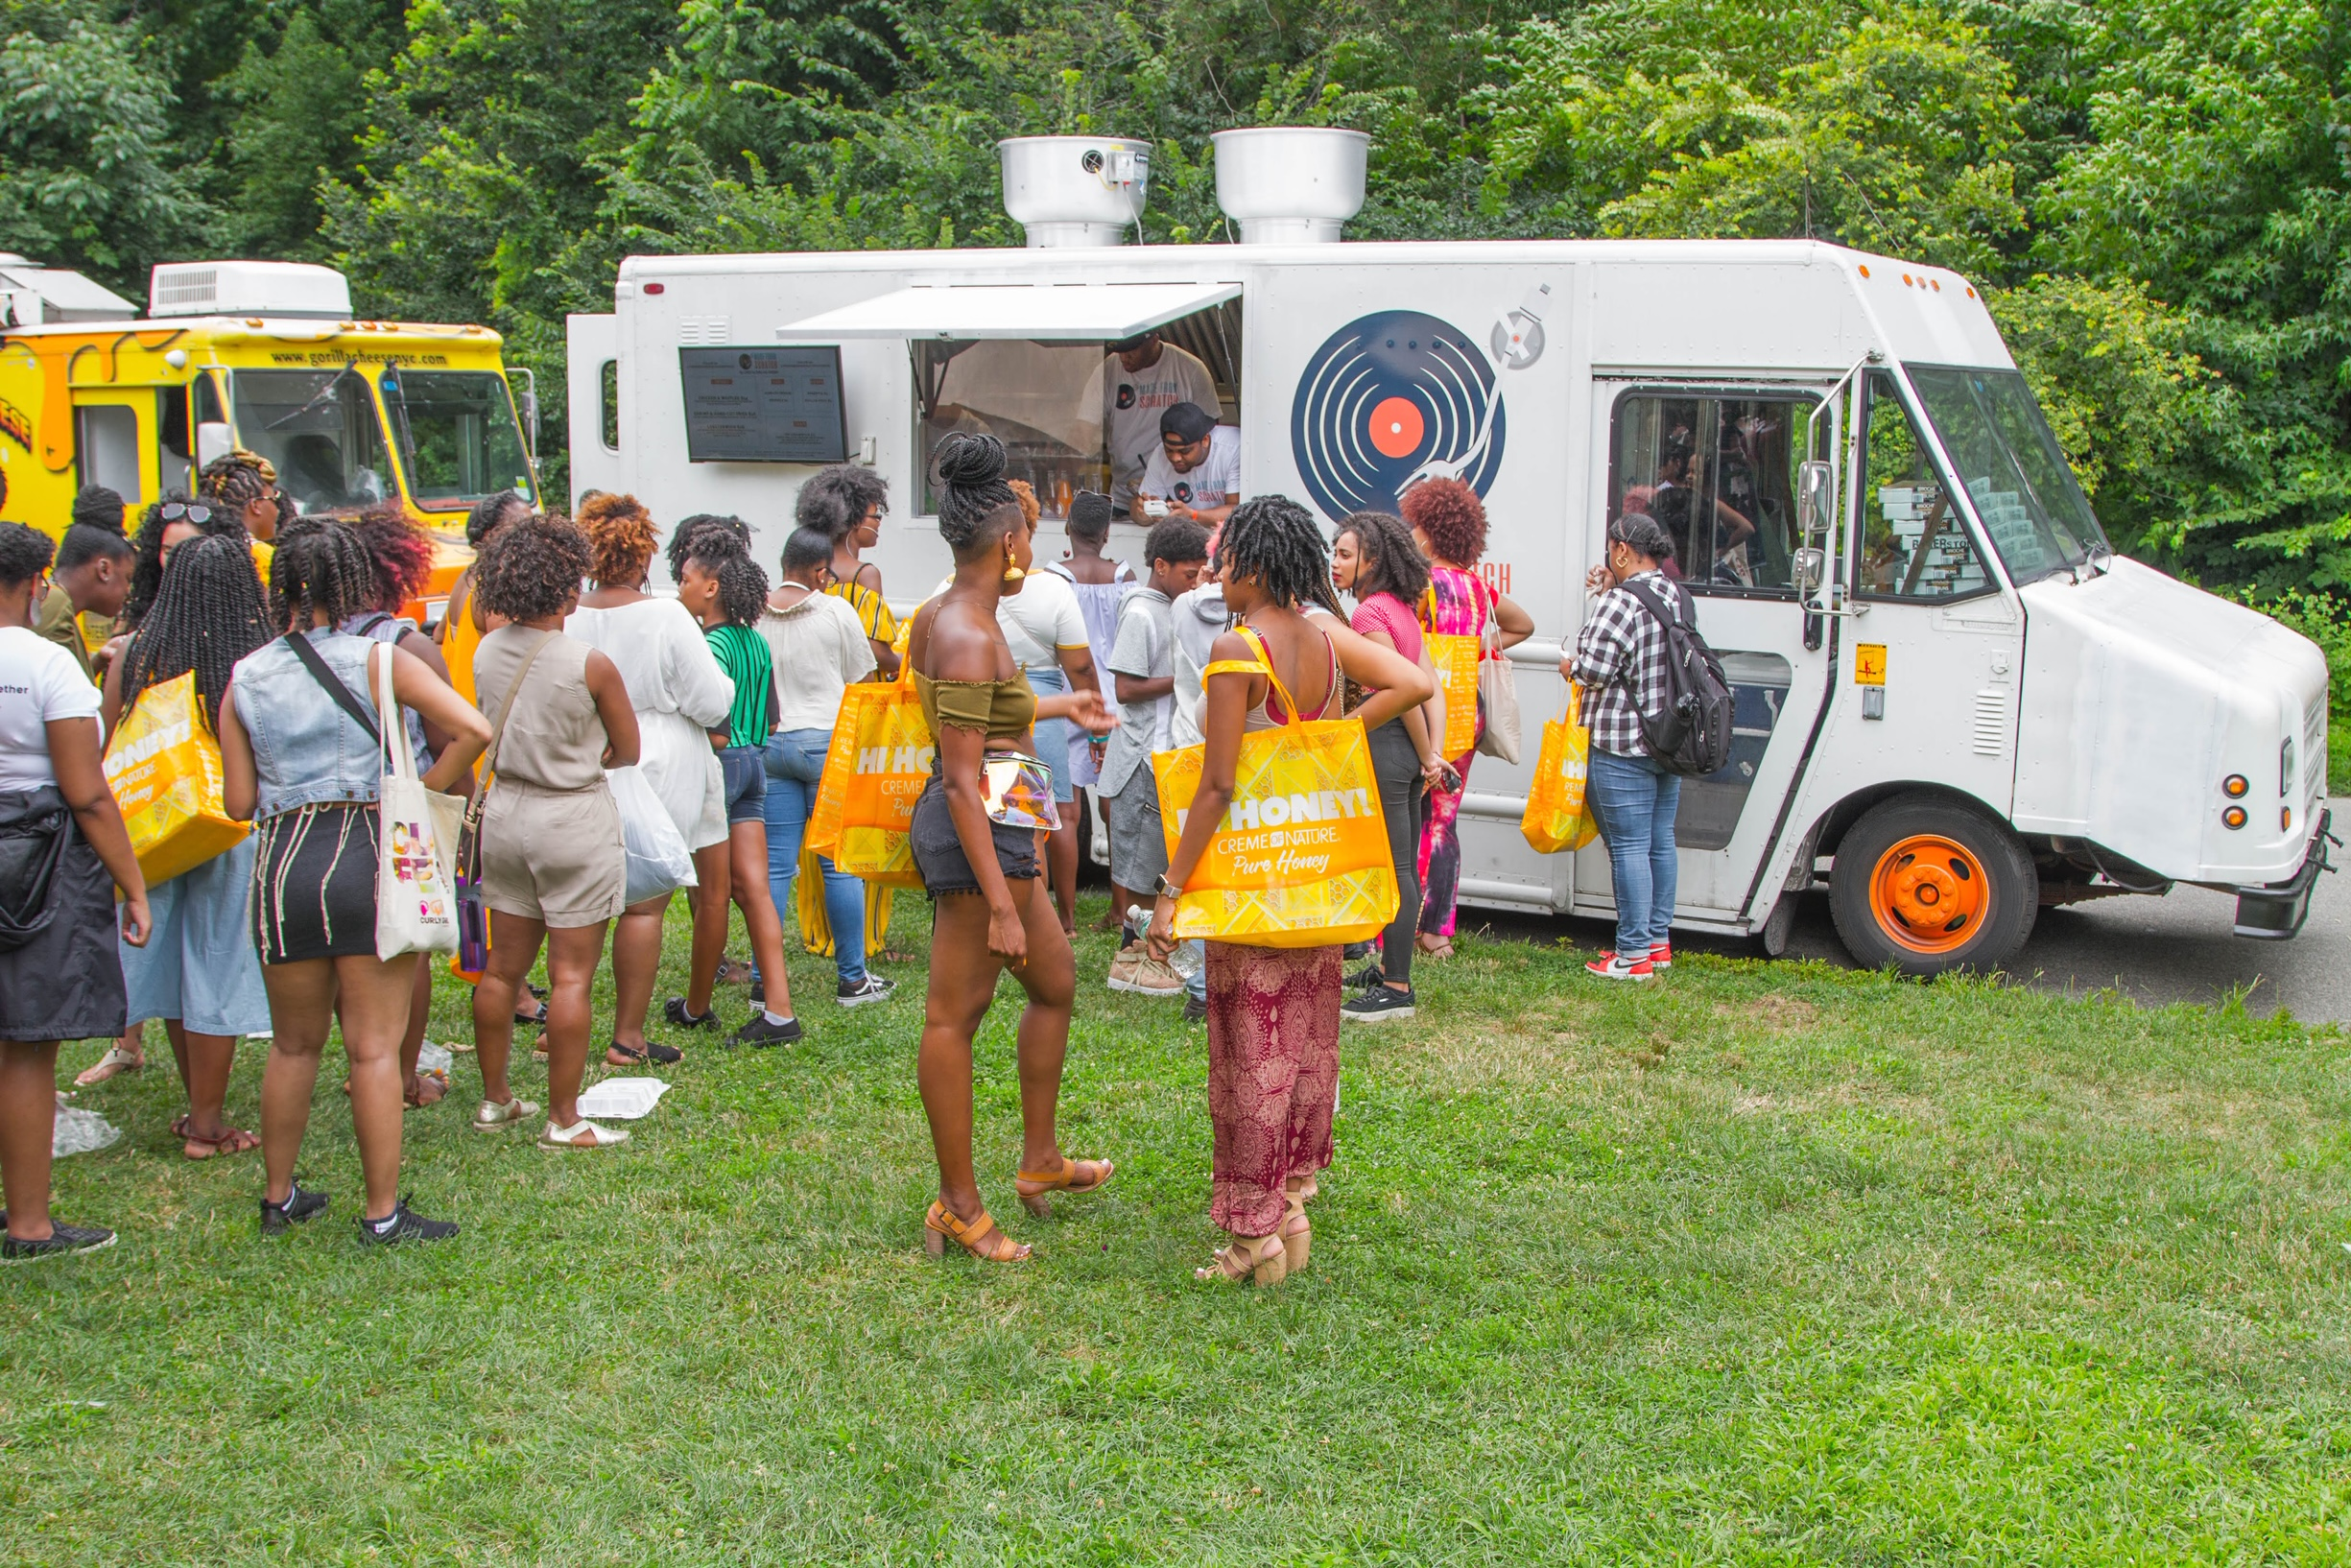 Soul food catering food truck New York